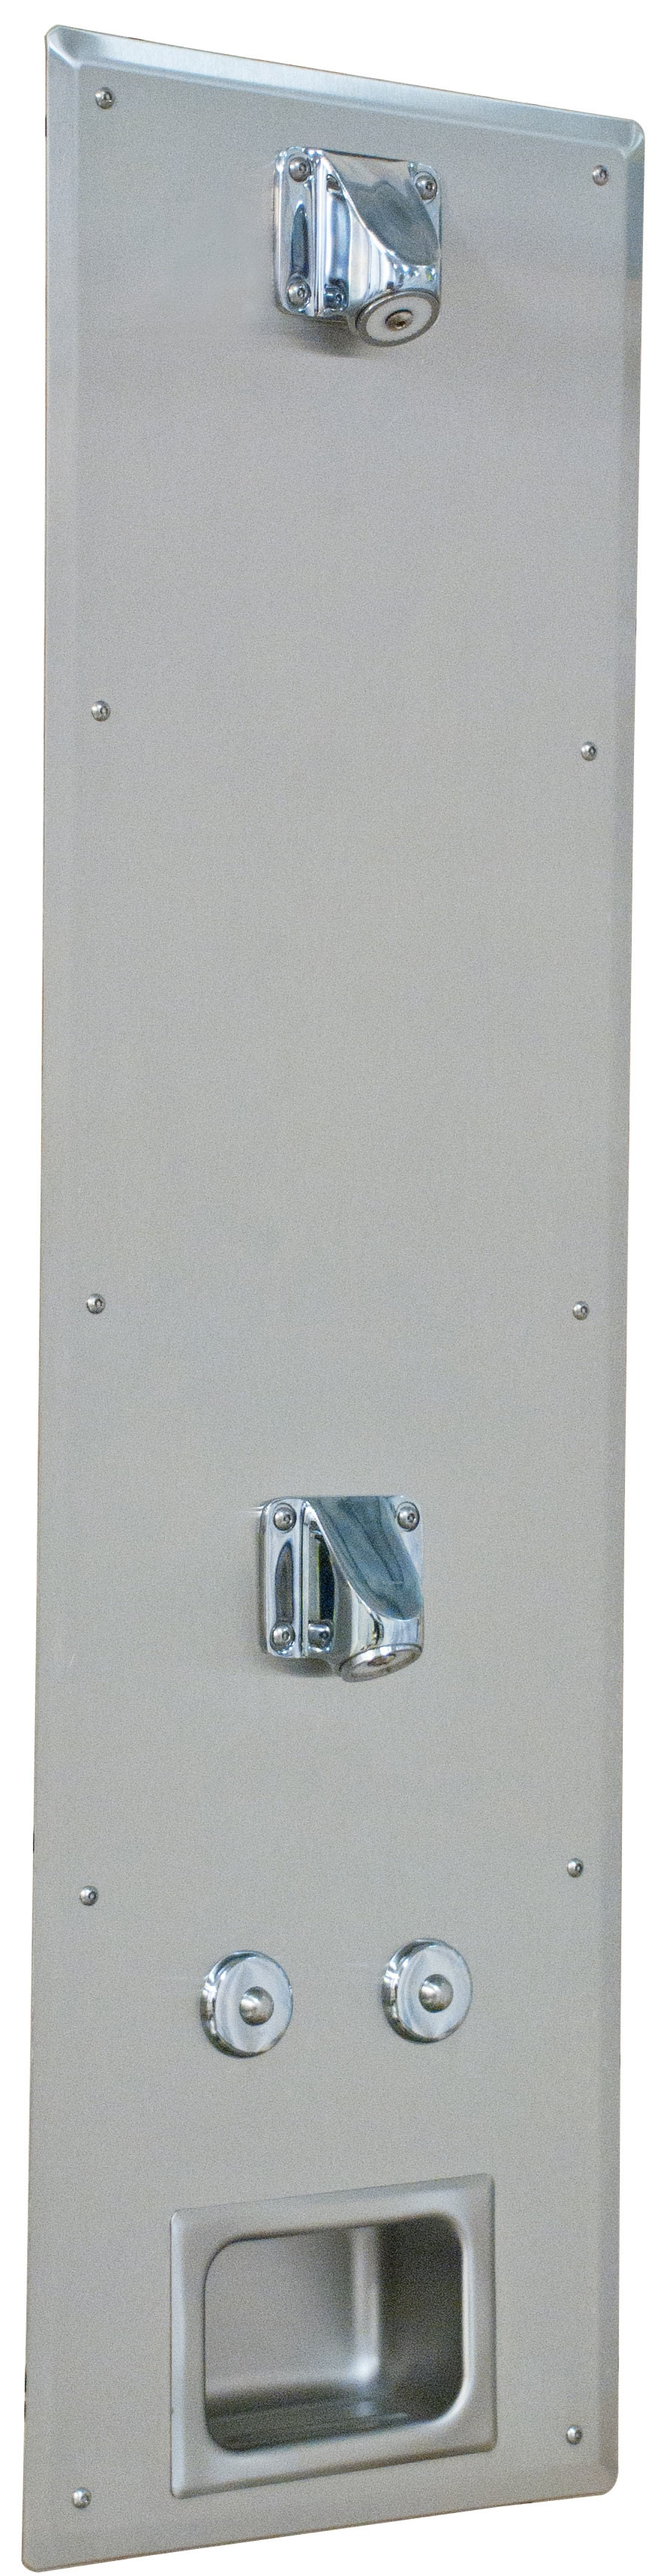 Ideas, ligature resistant front mounted 2 head panel shower bradley in size 882 x 3436  .